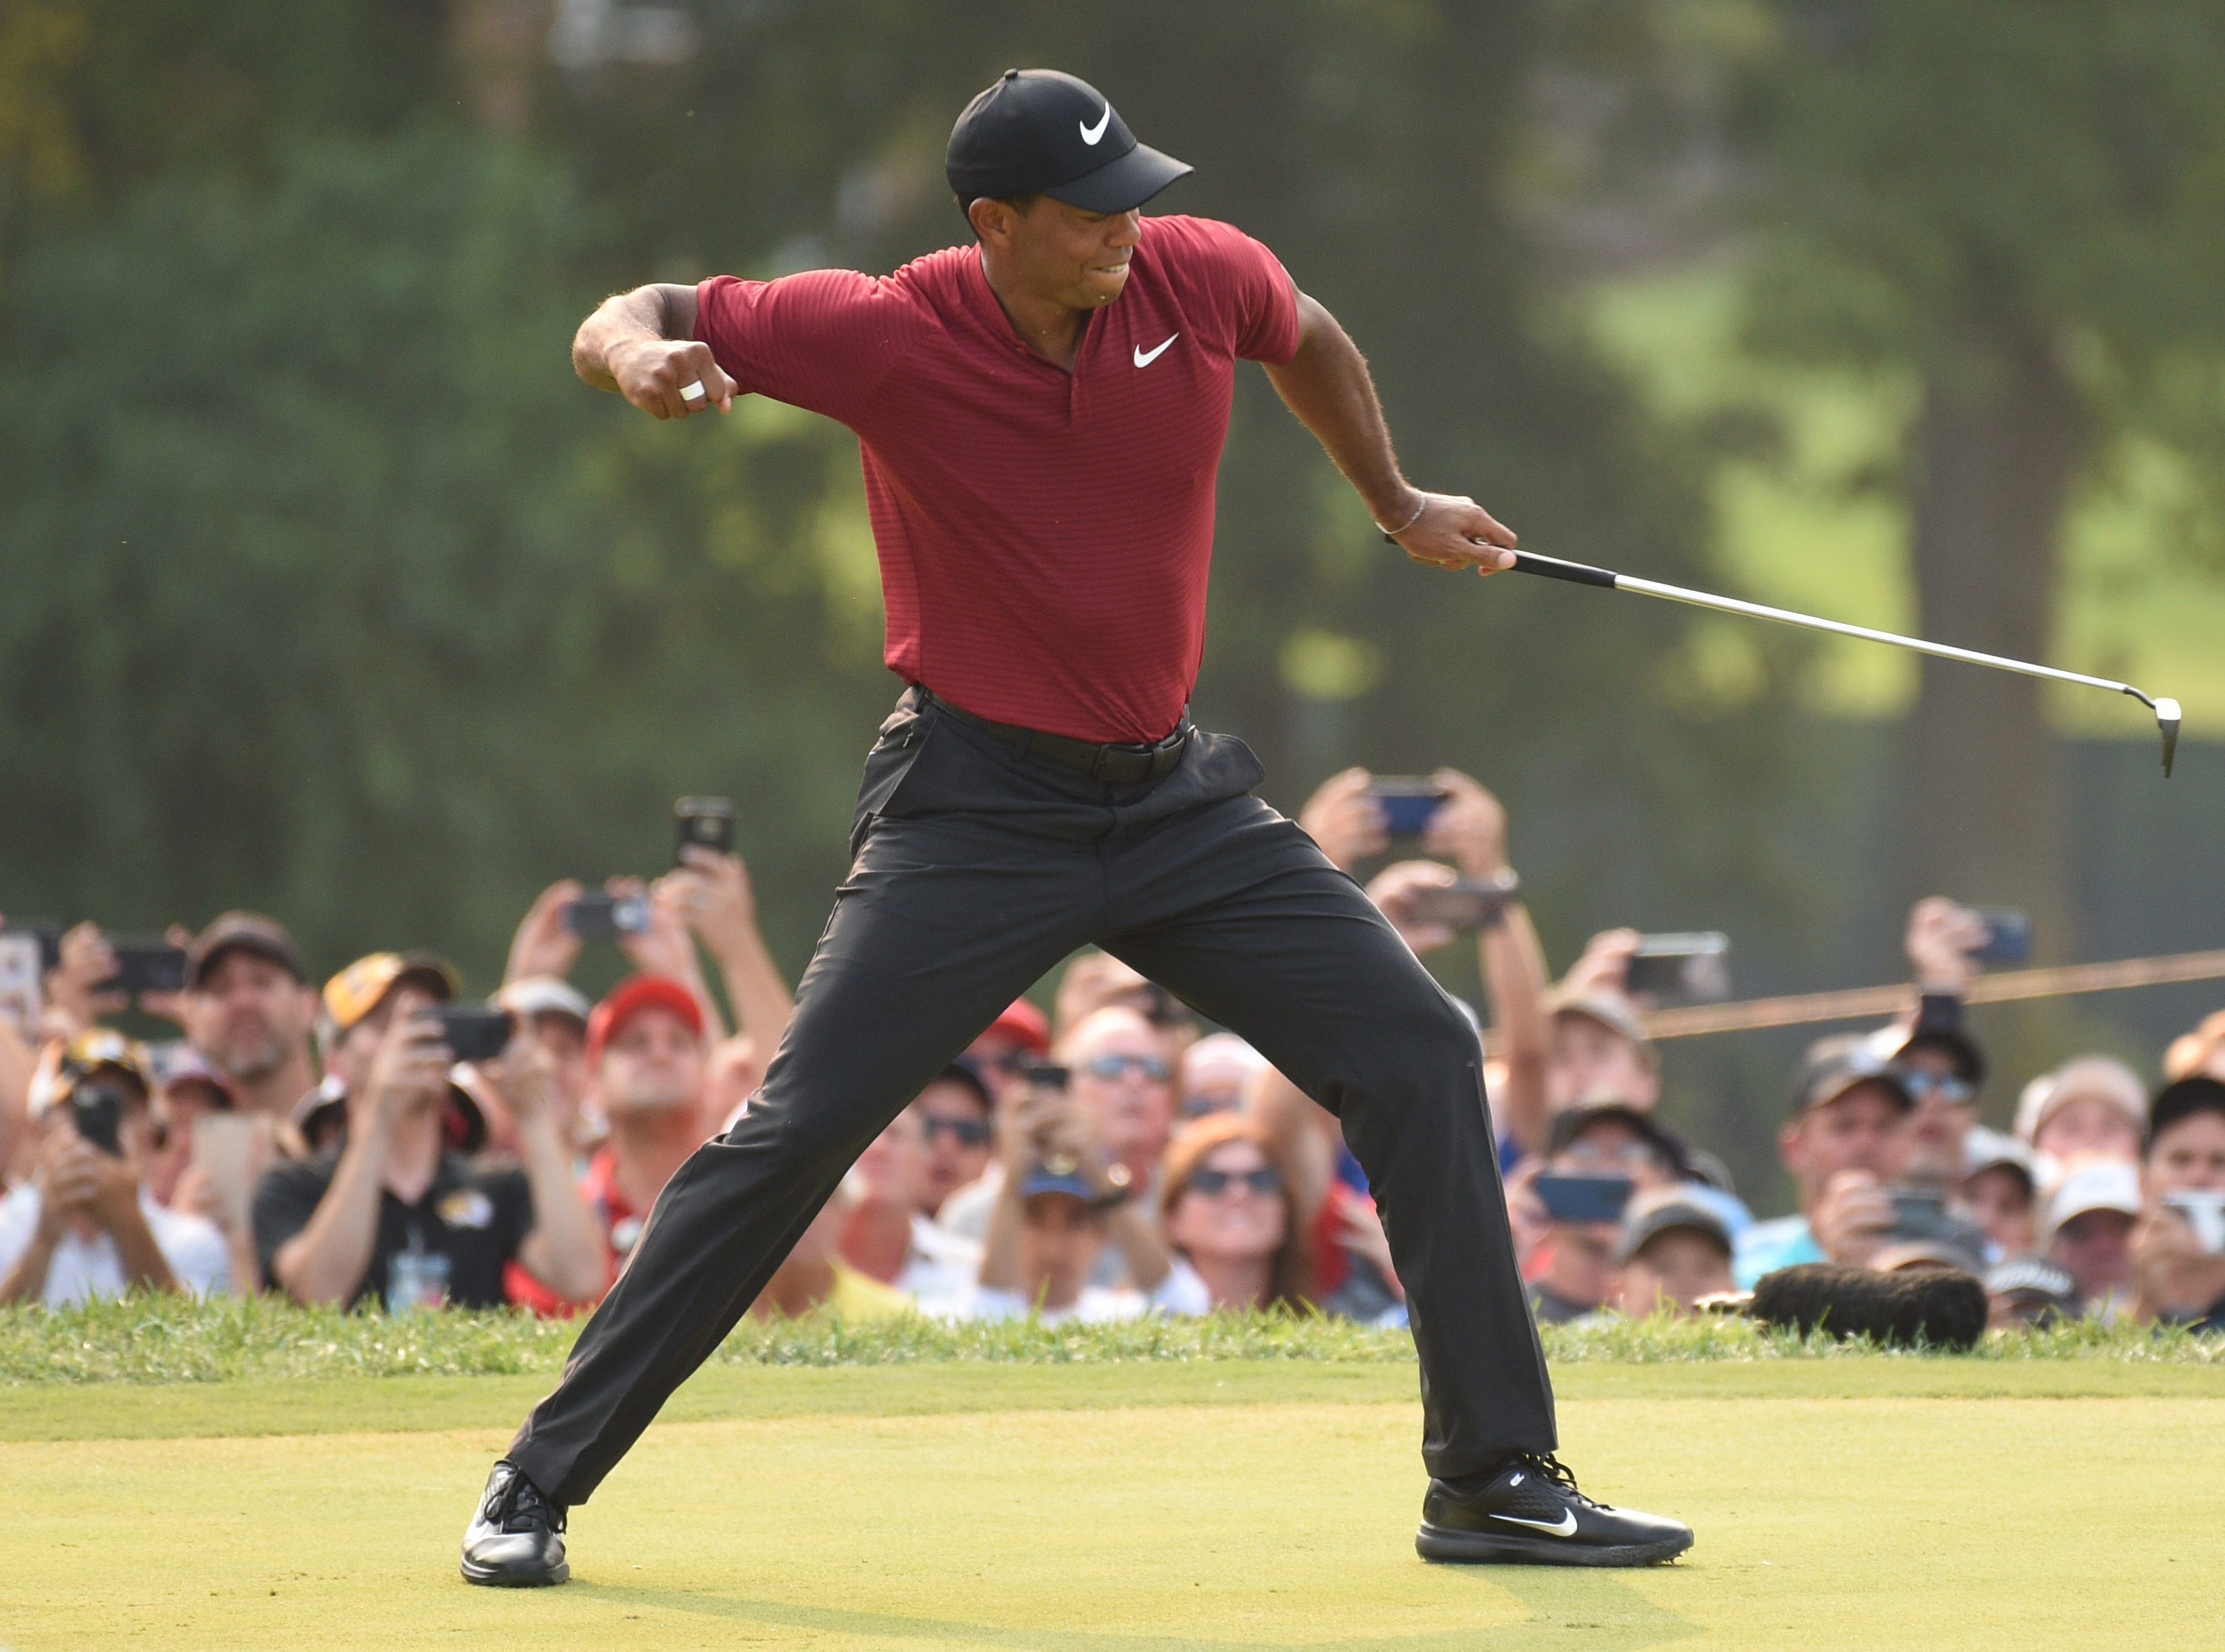 Tiger Woods celebrates after making a birdie putt on the 18th green.